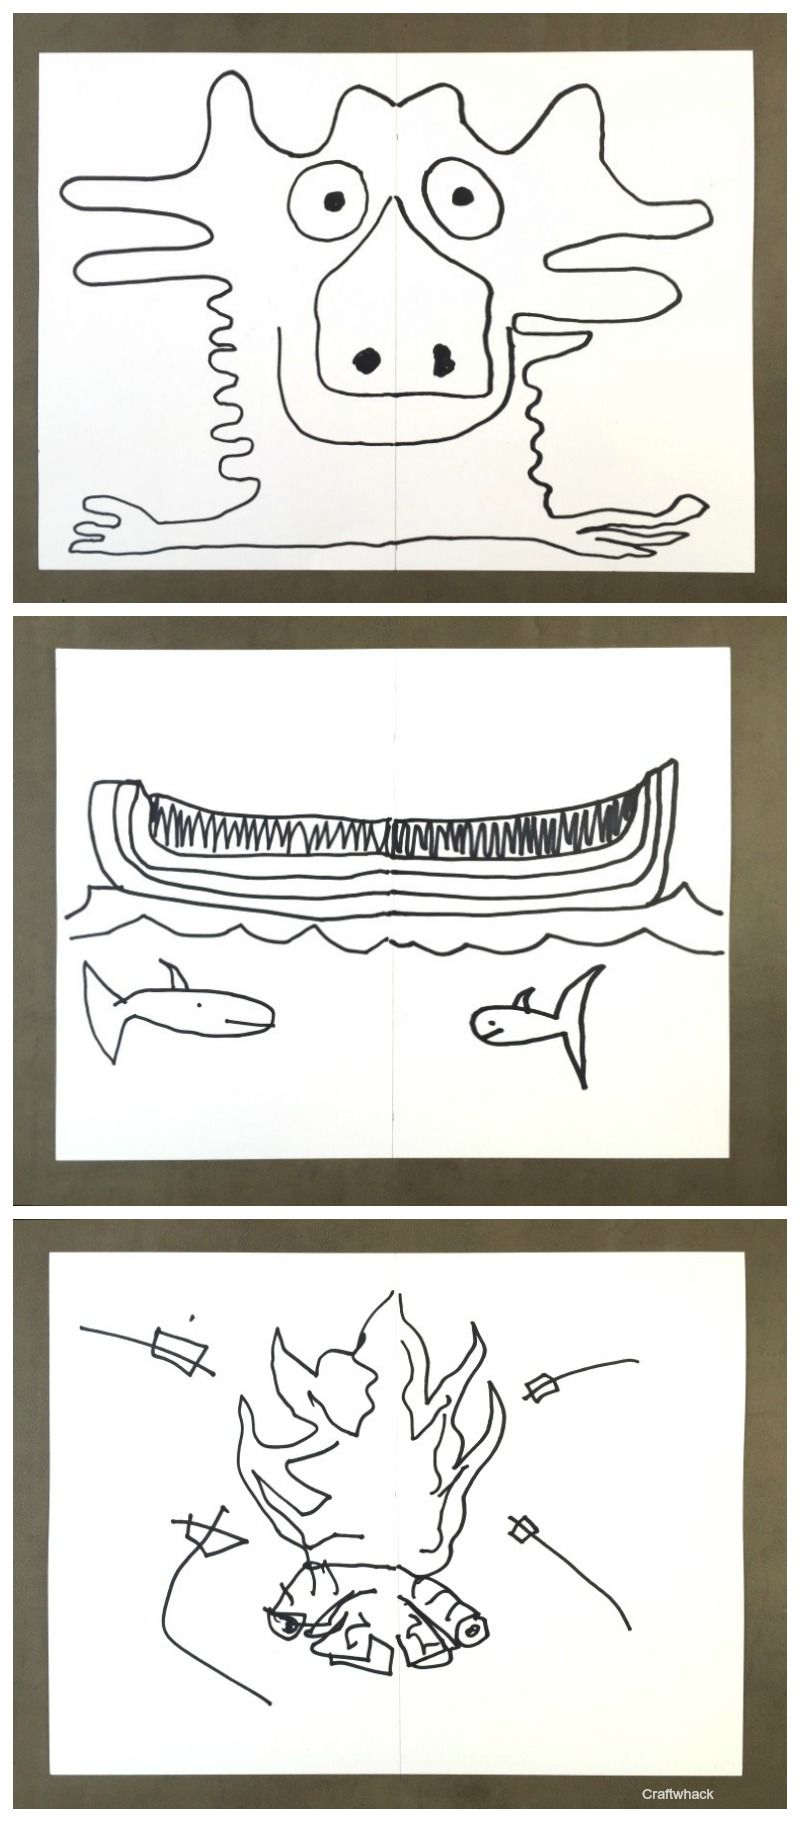 Synchronized Drawing Game From My Book School Stuff Drawings